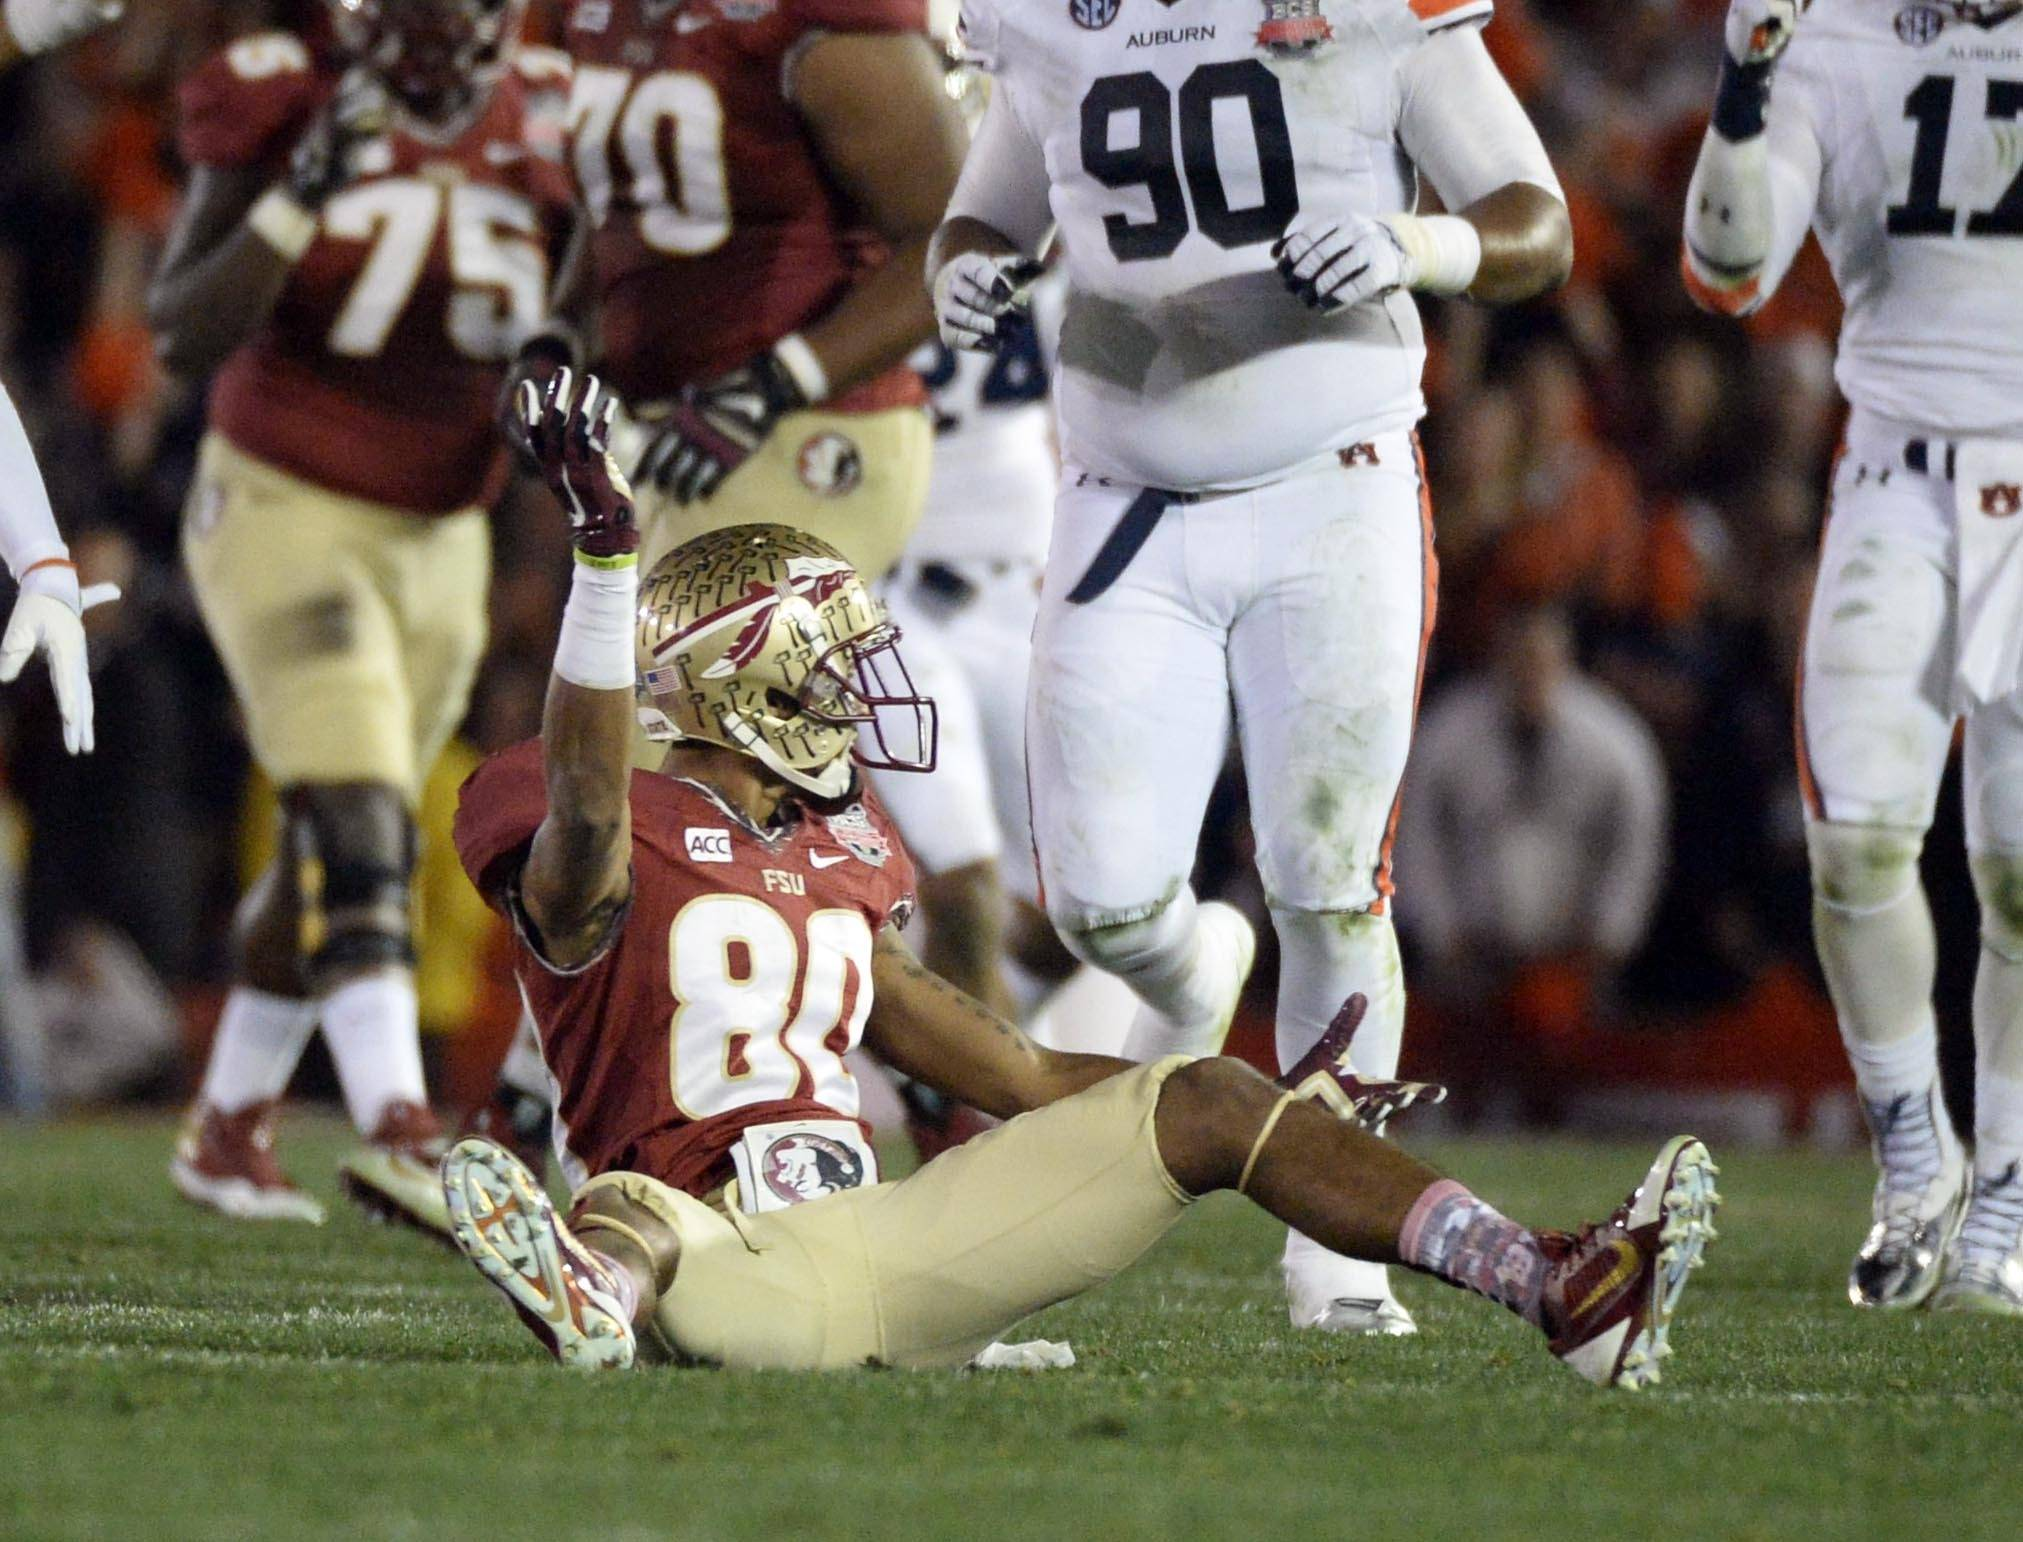 Jan 6, 2014; Pasadena, CA, USA; Florida State Seminoles wide receiver Rashad Greene (80) reacts after being tackled by Auburn Tigers cornerback Chris Davis (not pictured) during the first half of the 2014 BCS National Championship game at the Rose Bowl.  Mandatory Credit: Richard Mackson-USA TODAY Sports